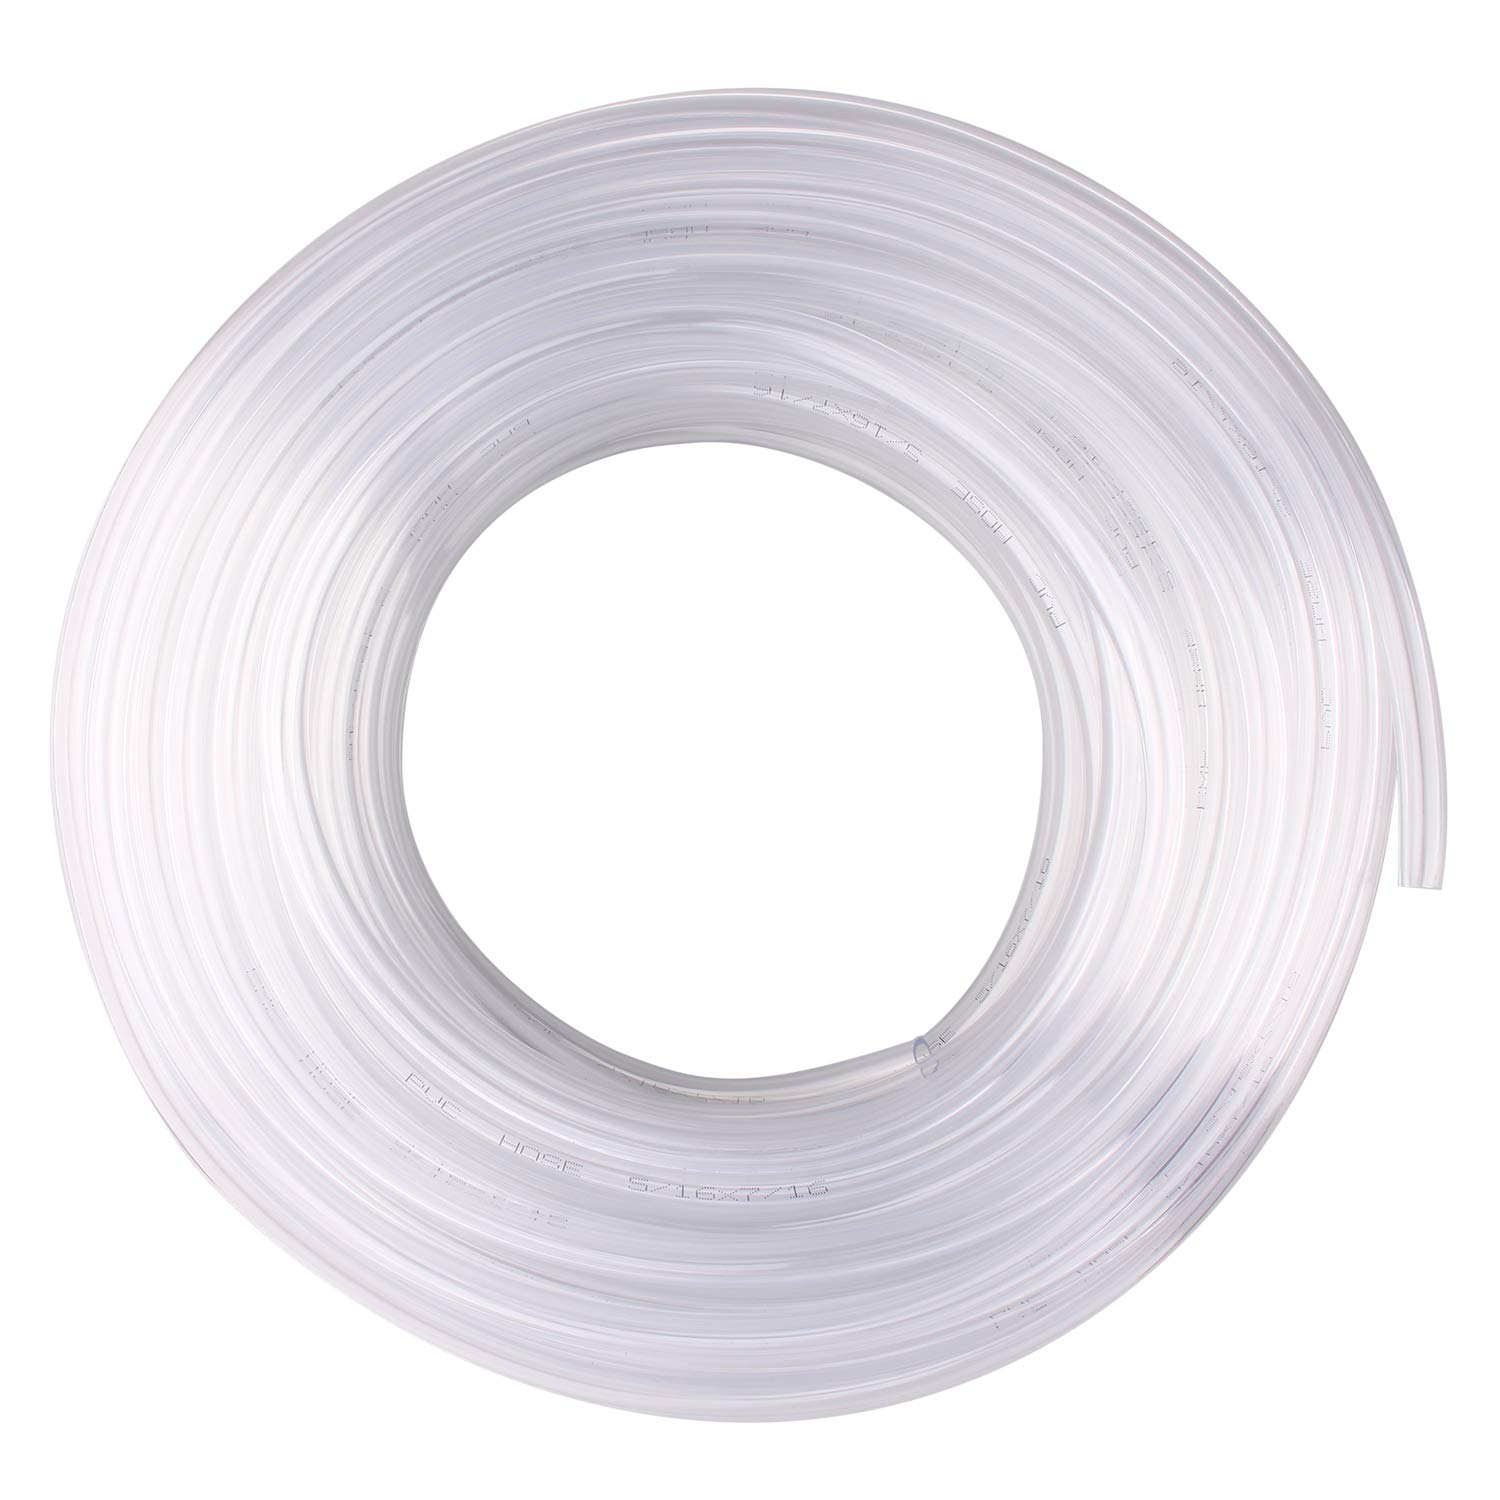 DERPIPE Clear Vinyl Tubing - 5/16 in ID 7/16 in OD PVC Tube Food Grade Flexible Plastic Pipe Hose for Homebrewing, Siphon Pump 30.5 Meters(100ft) Length